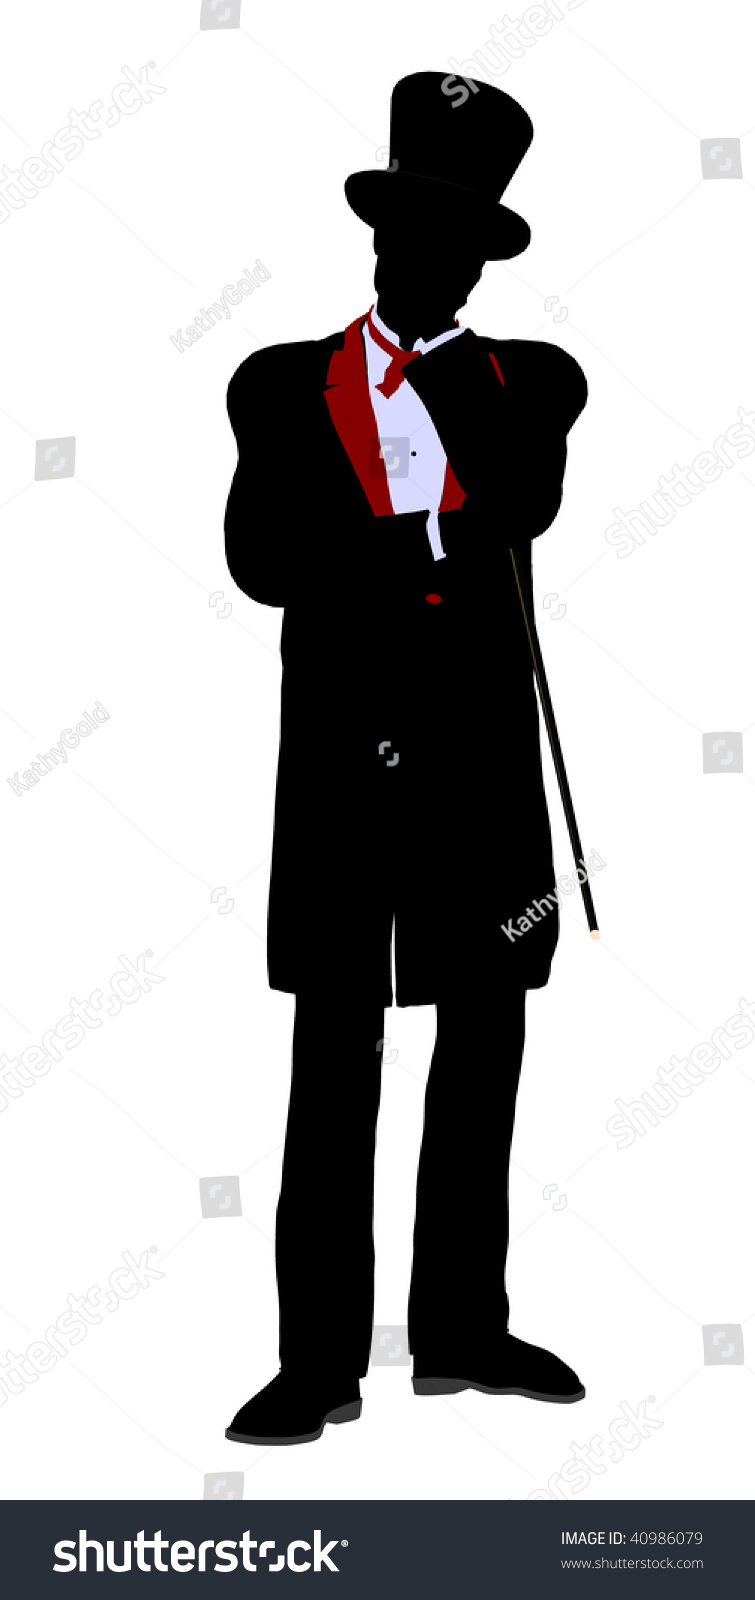 Male Magician Silhouette Illustration On White Stock ...